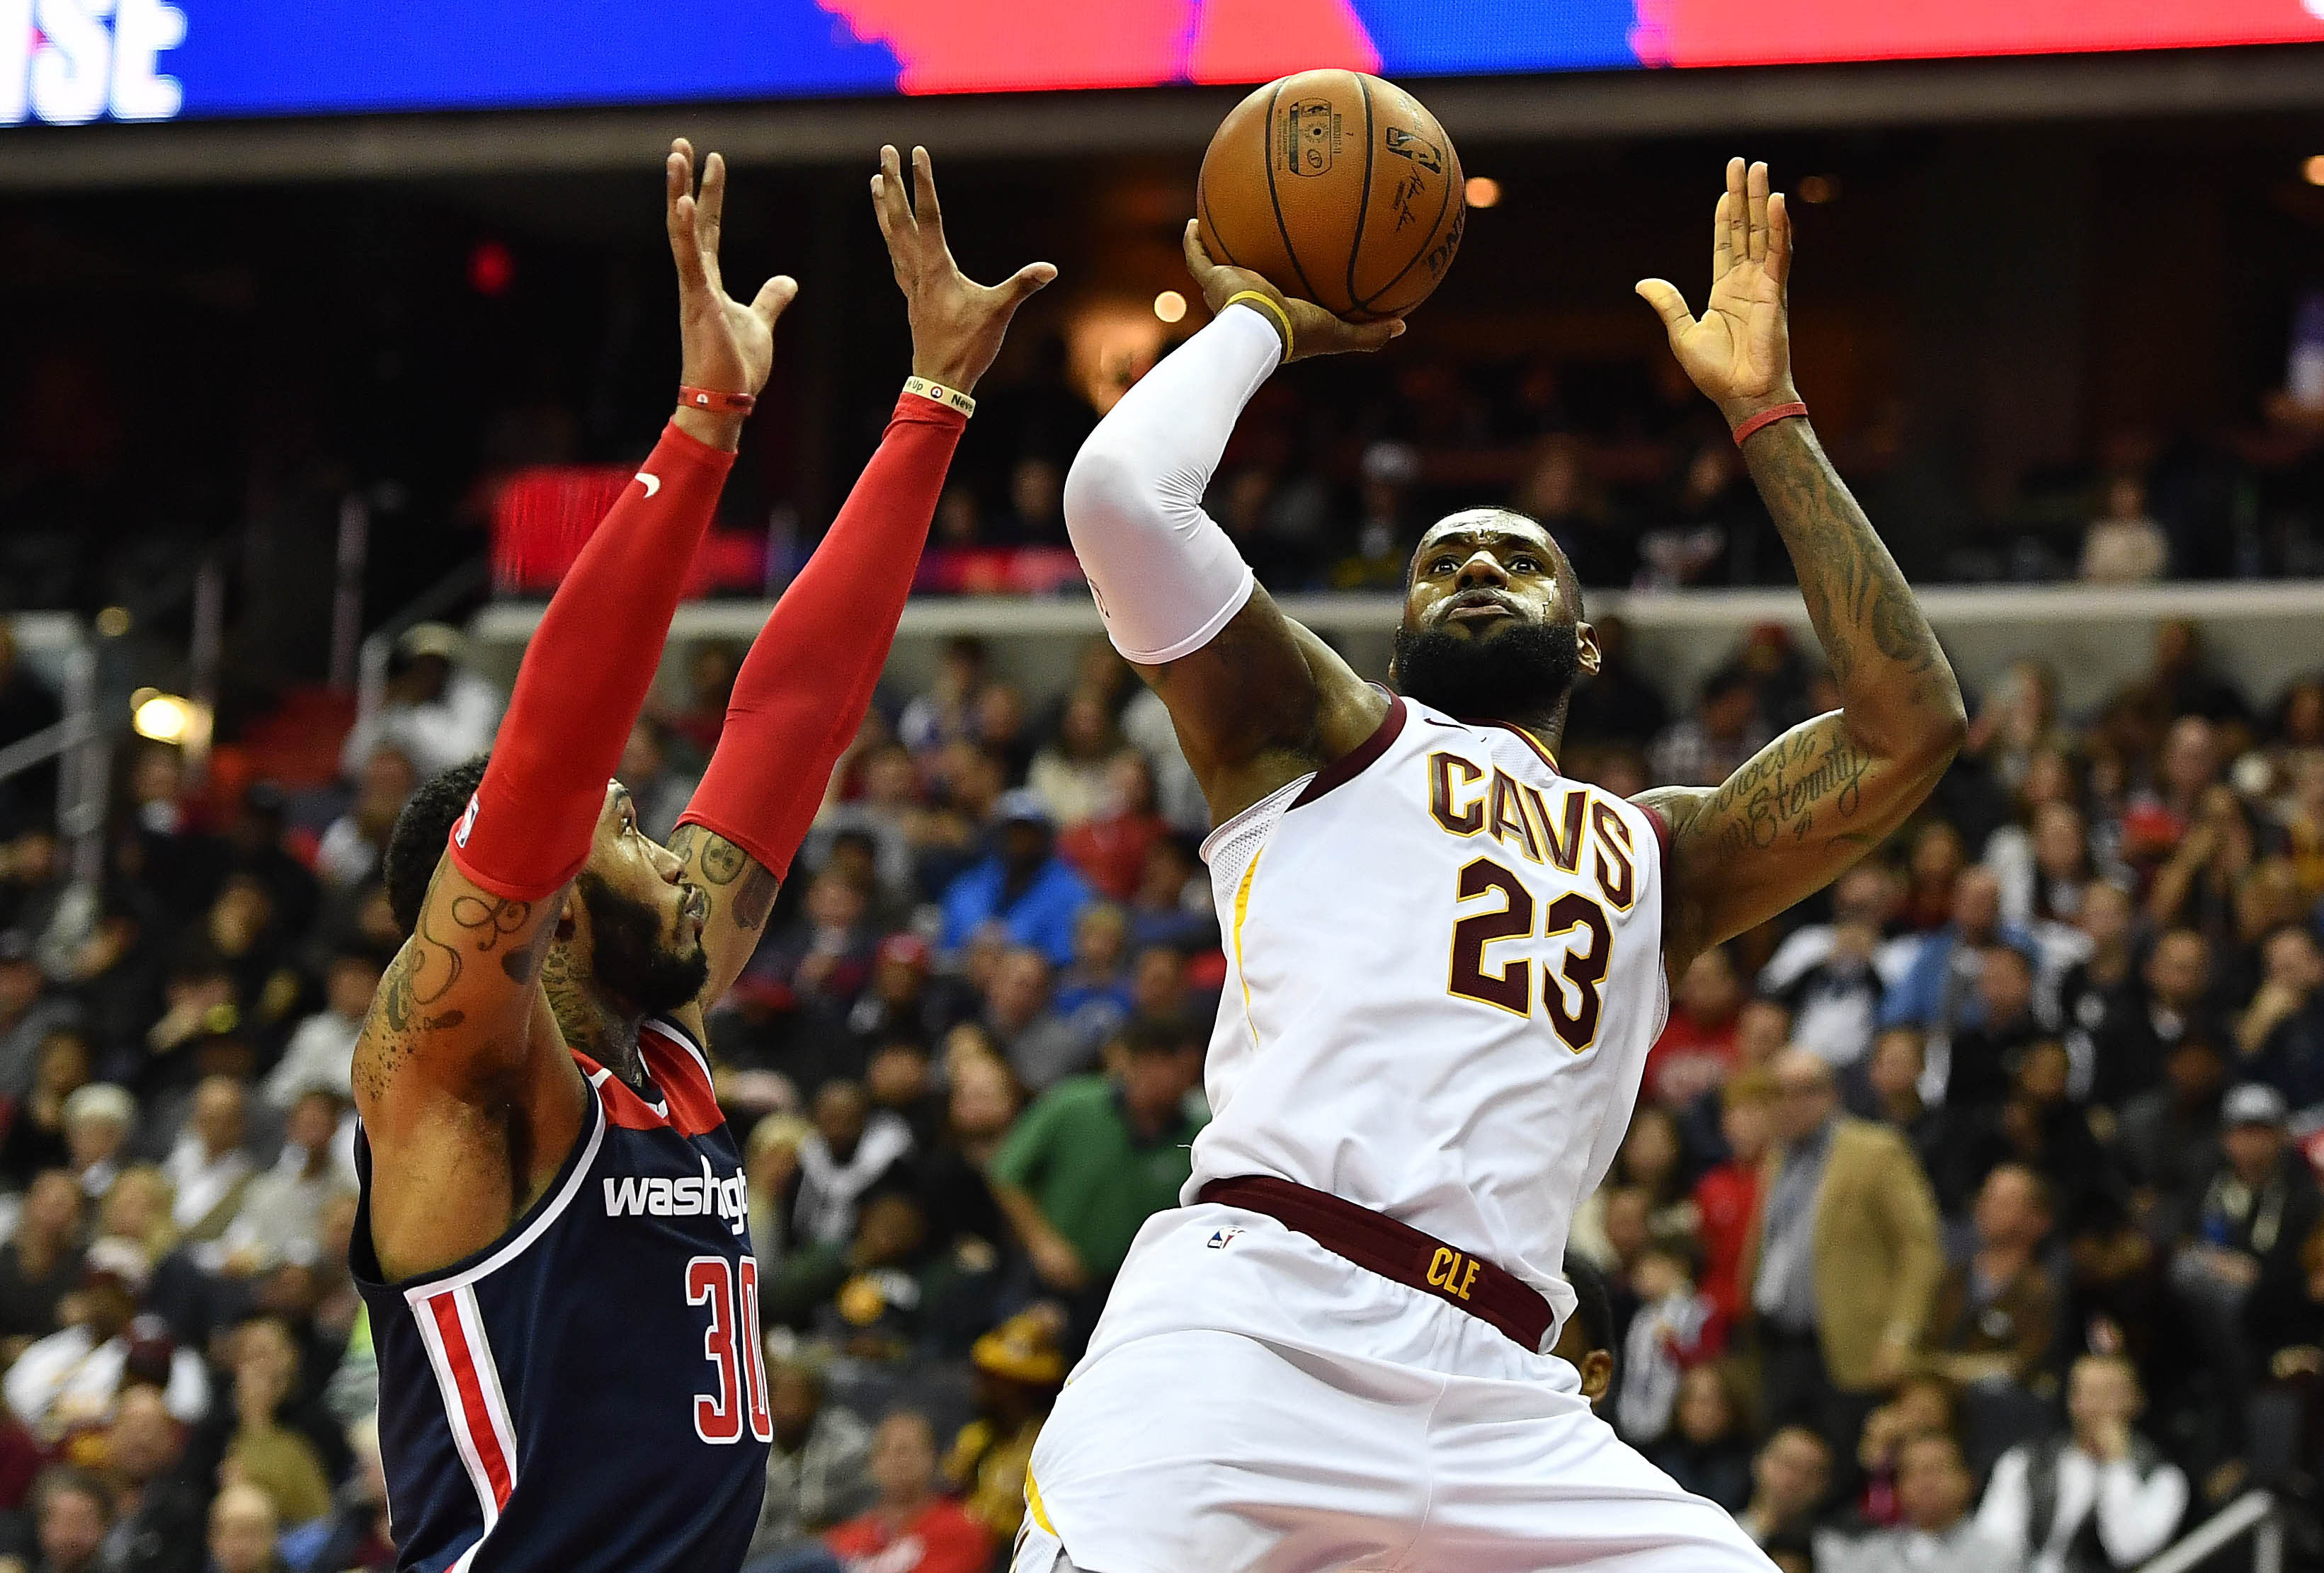 LeBron James after 0-3 road trip: 'This trip was trash'